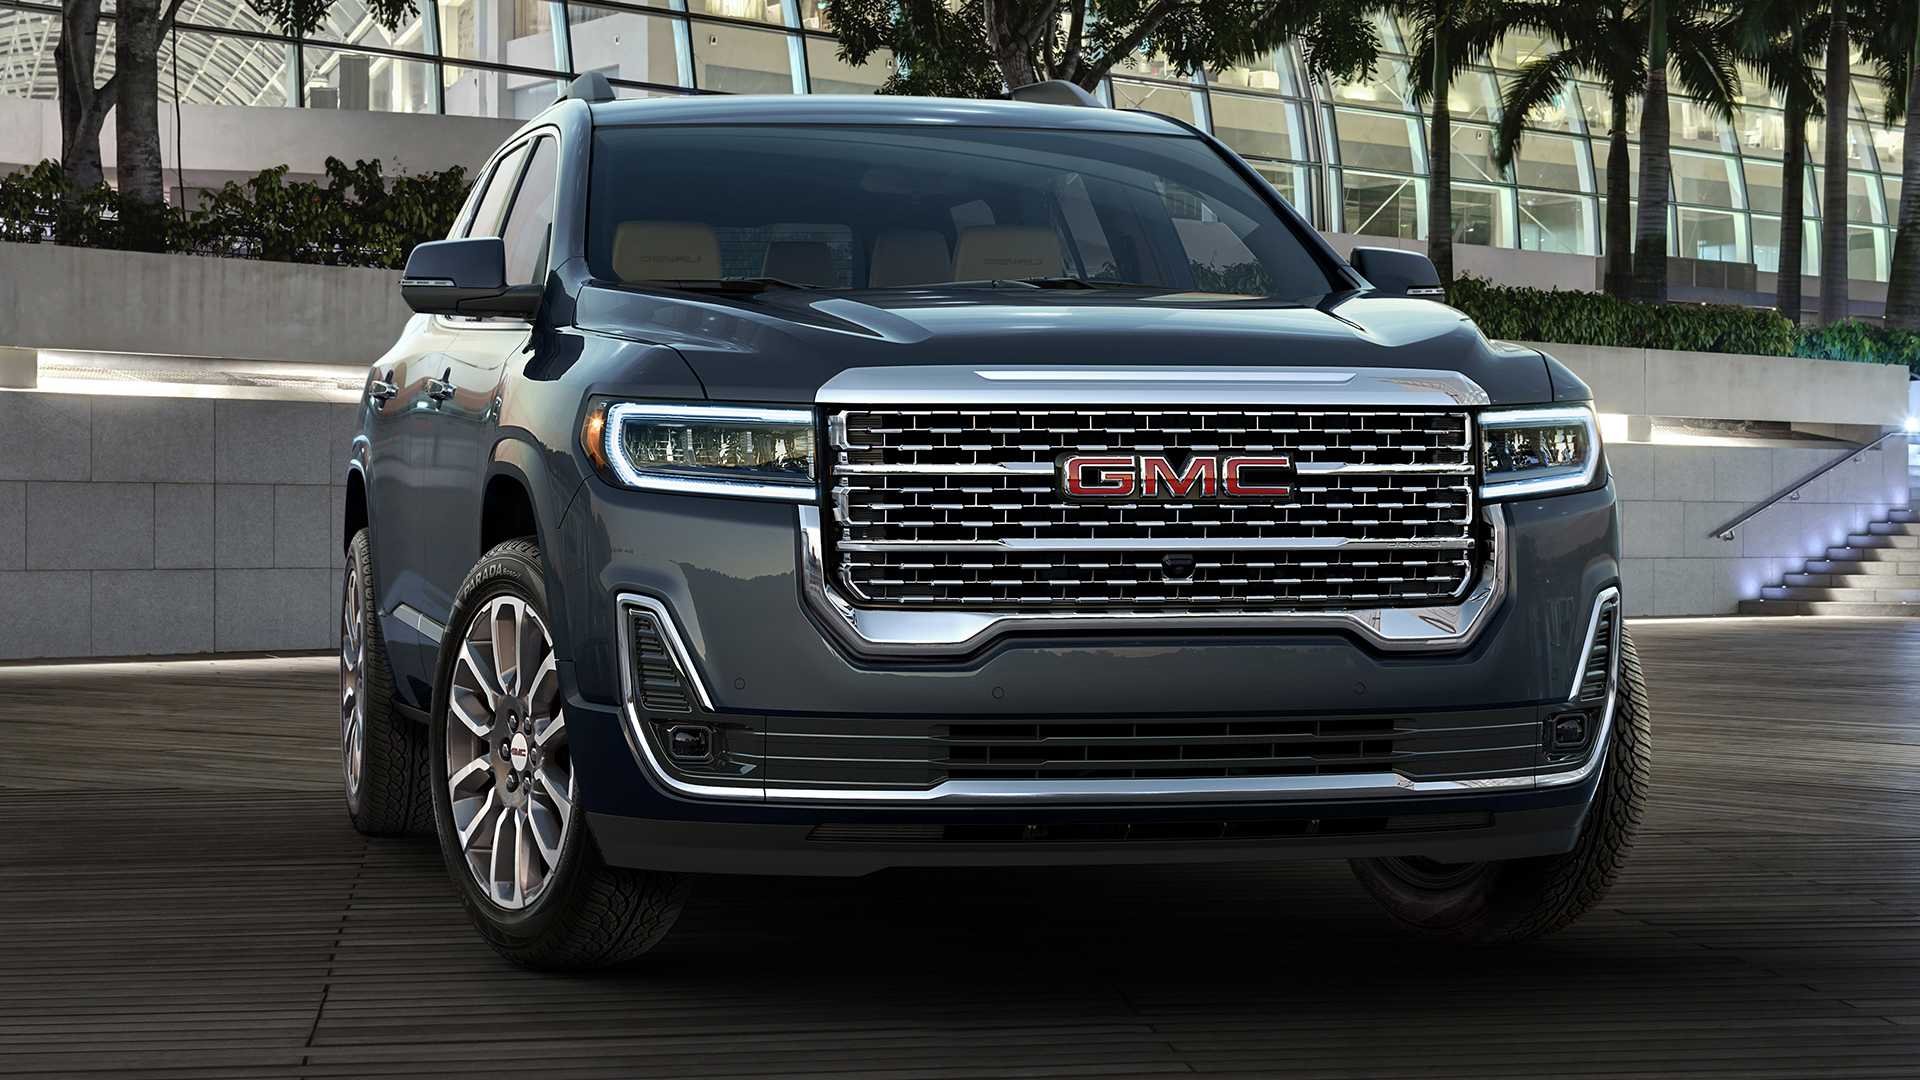 GMC has finally taken the wraps off its facelifted seven-seat SUV Acadia